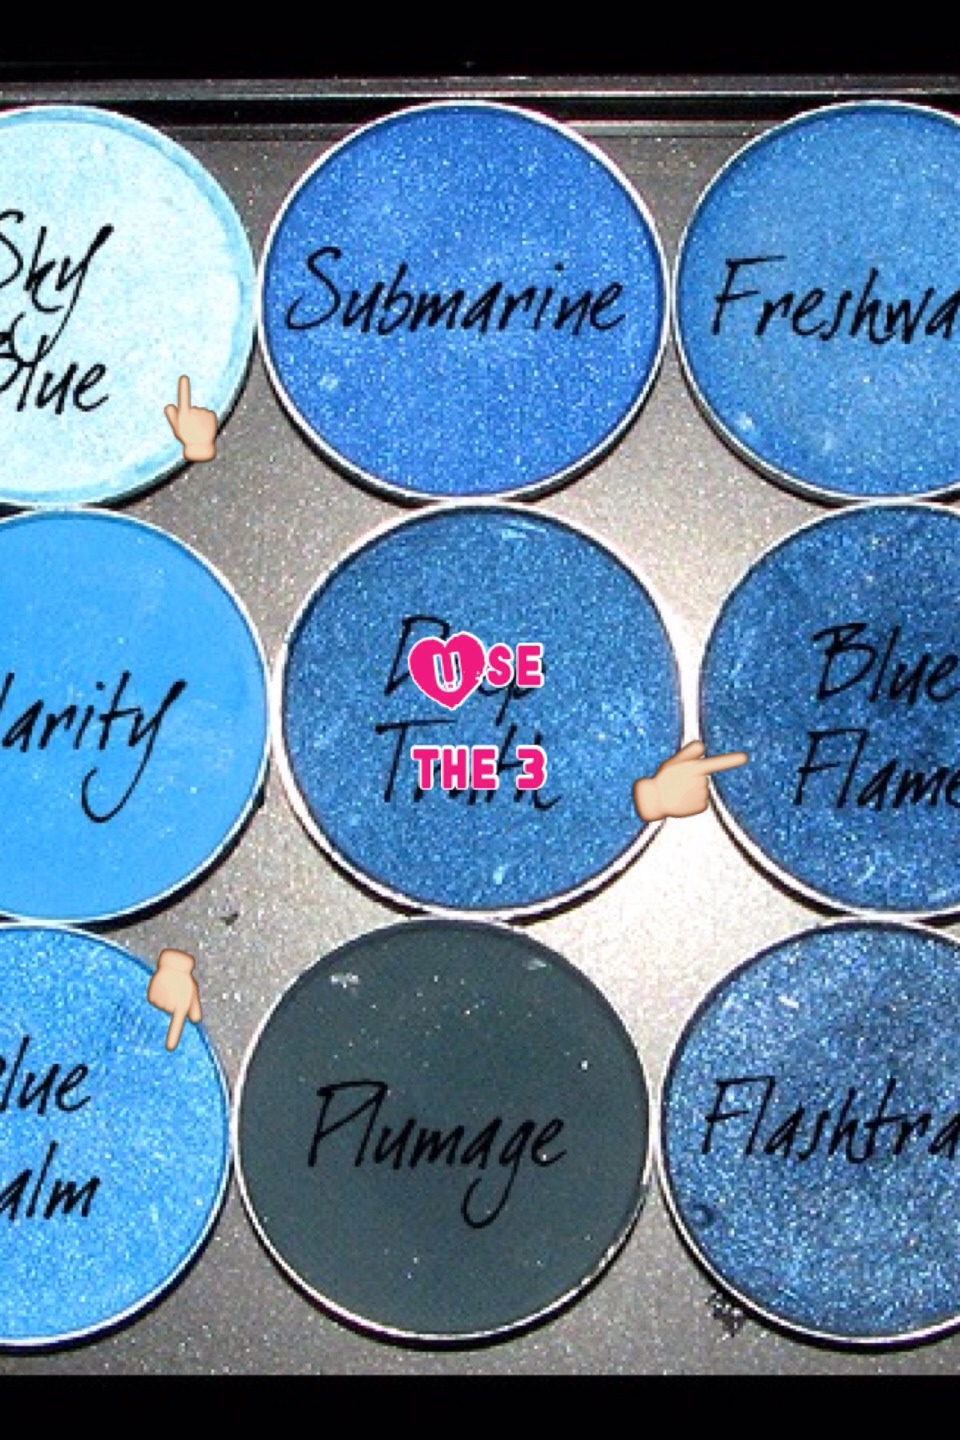 Use the 3 blue eyeshadows that is pointed to and blend them together to get .................